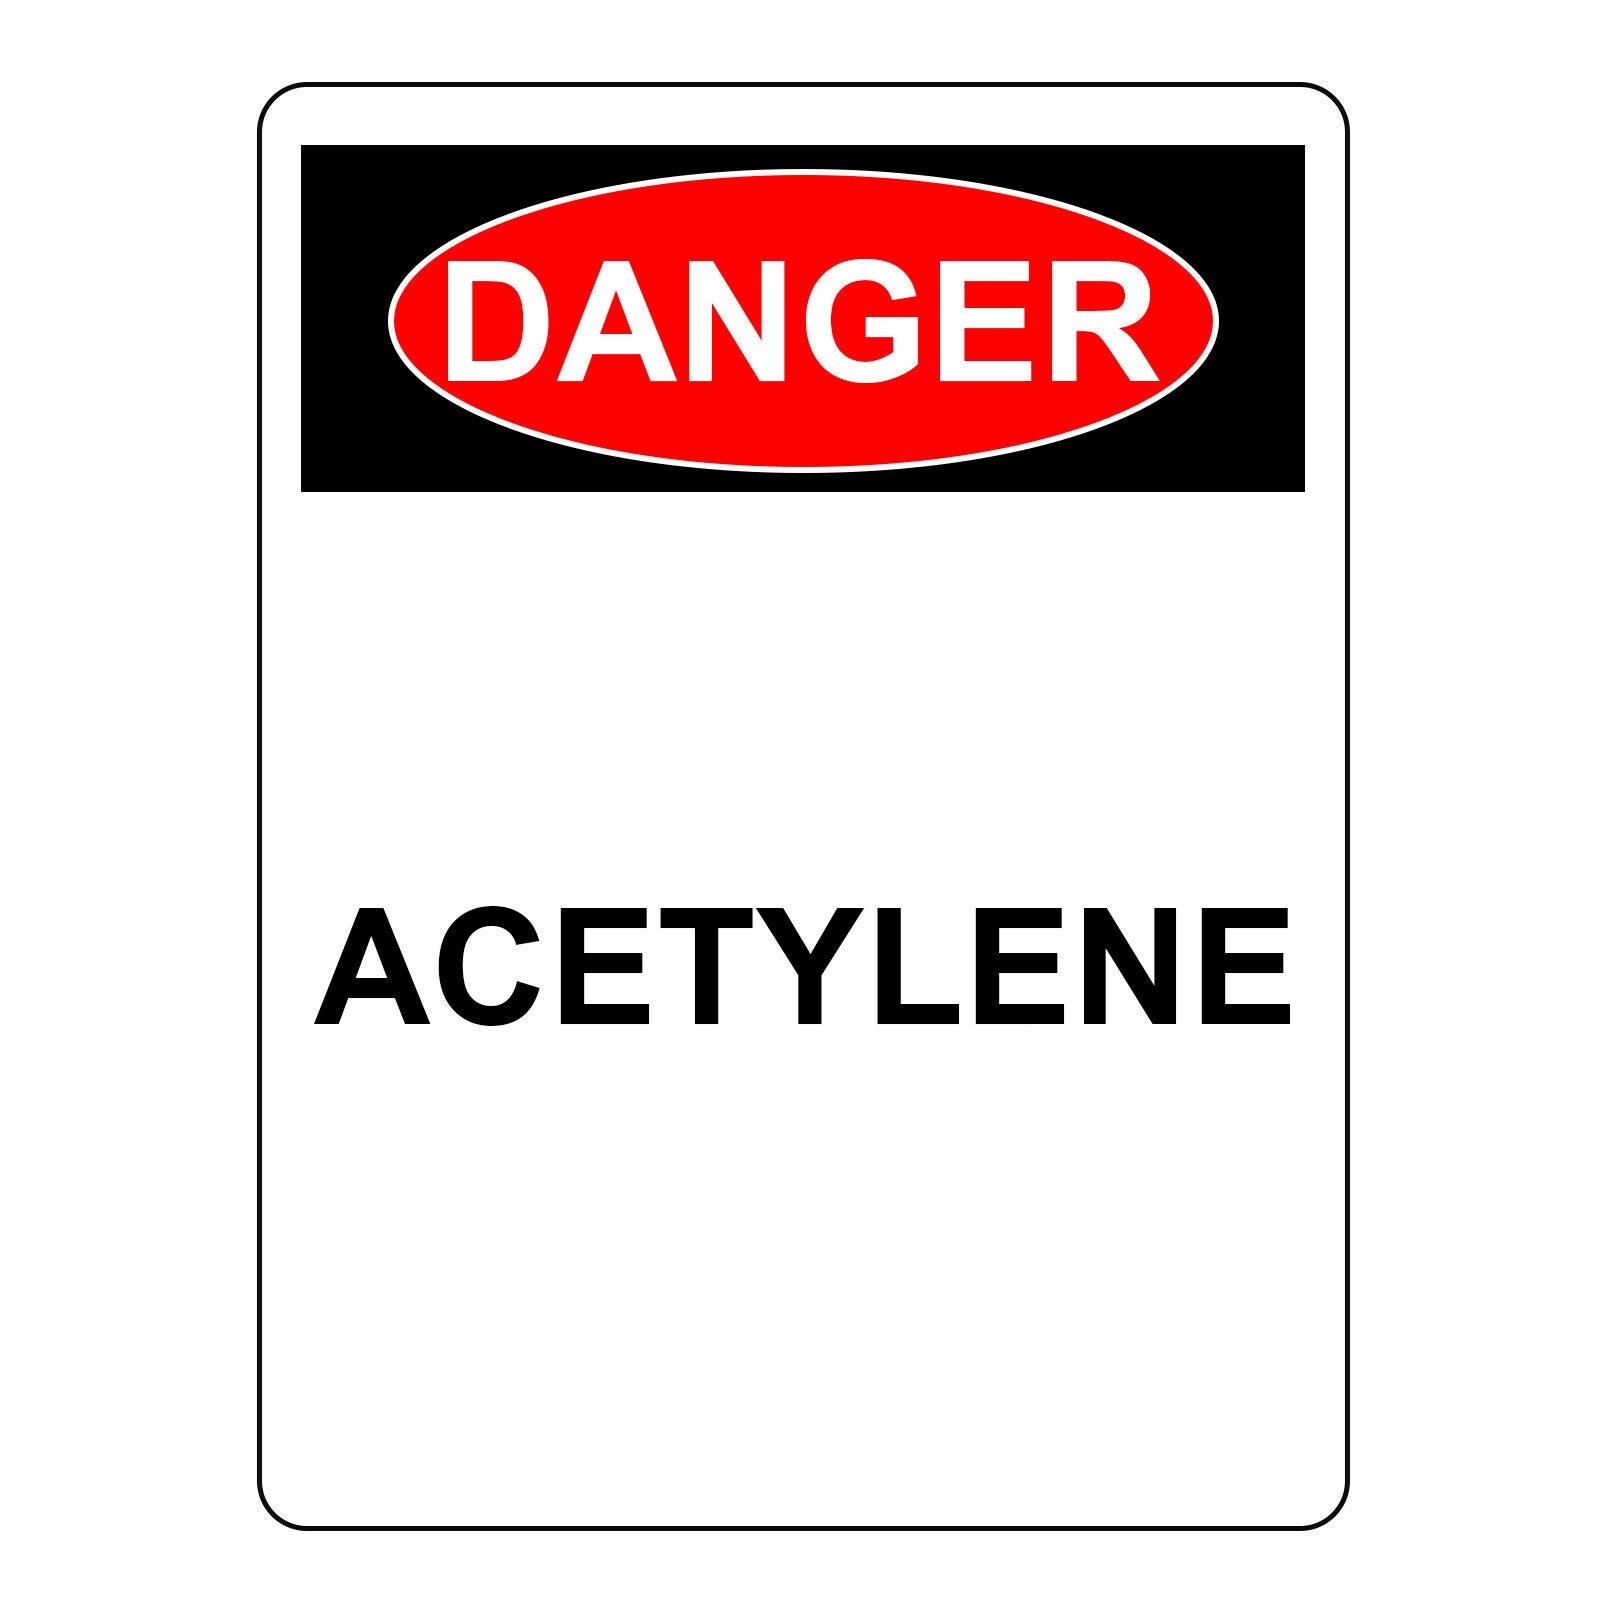 Danger Acetylene Sign, Aluminum Metal Safety UV Print Hazardous Warning Sign